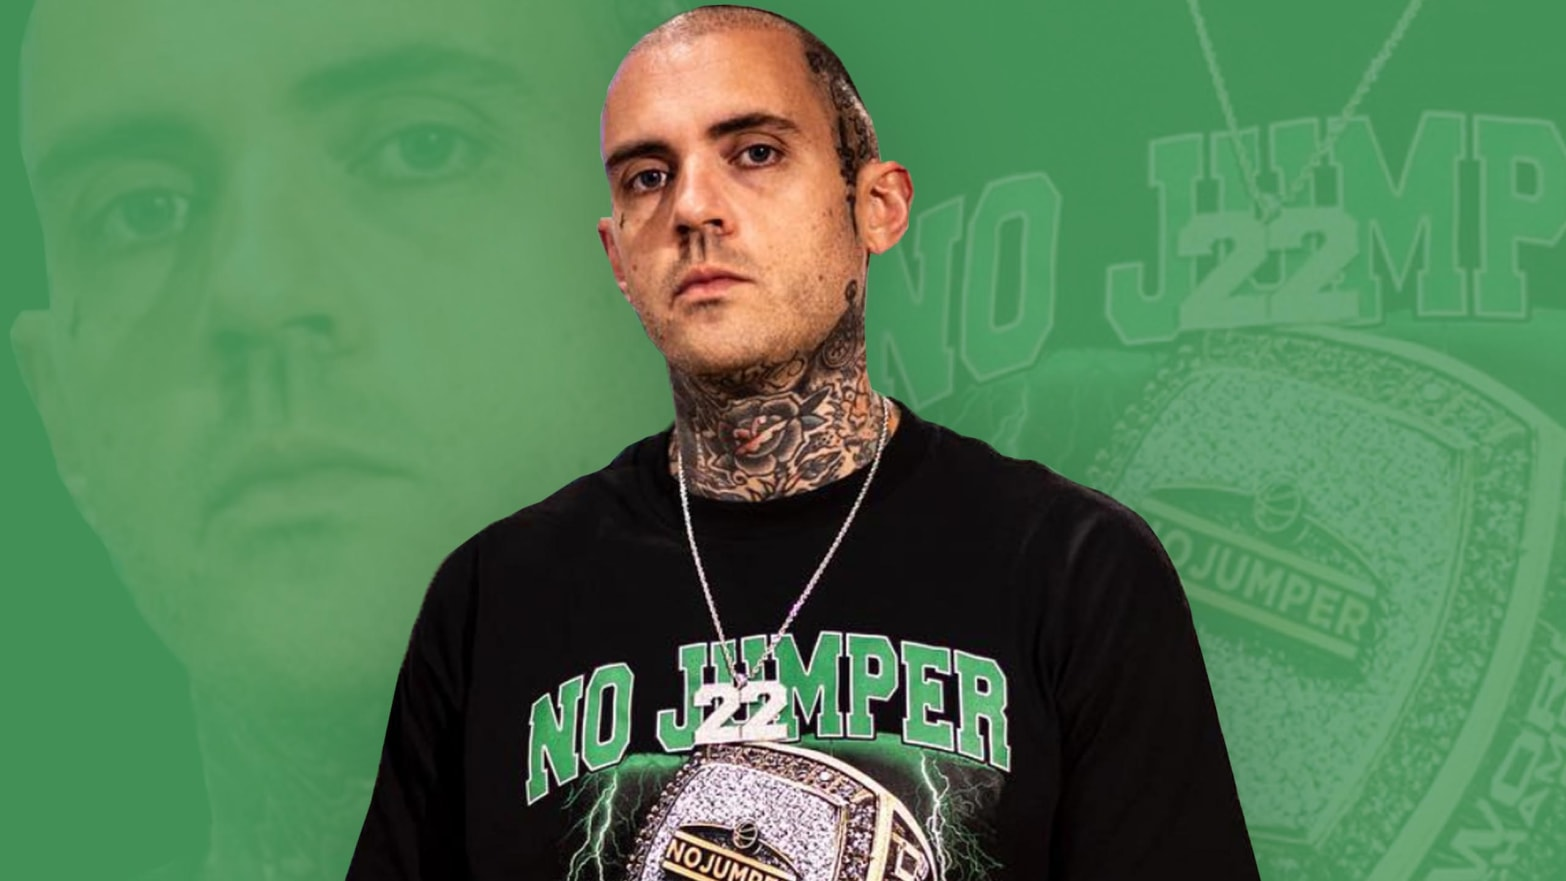 The 37-year old son of father (?) and mother(?) Adam22 in 2021 photo. Adam22 earned a  million dollar salary - leaving the net worth at  million in 2021